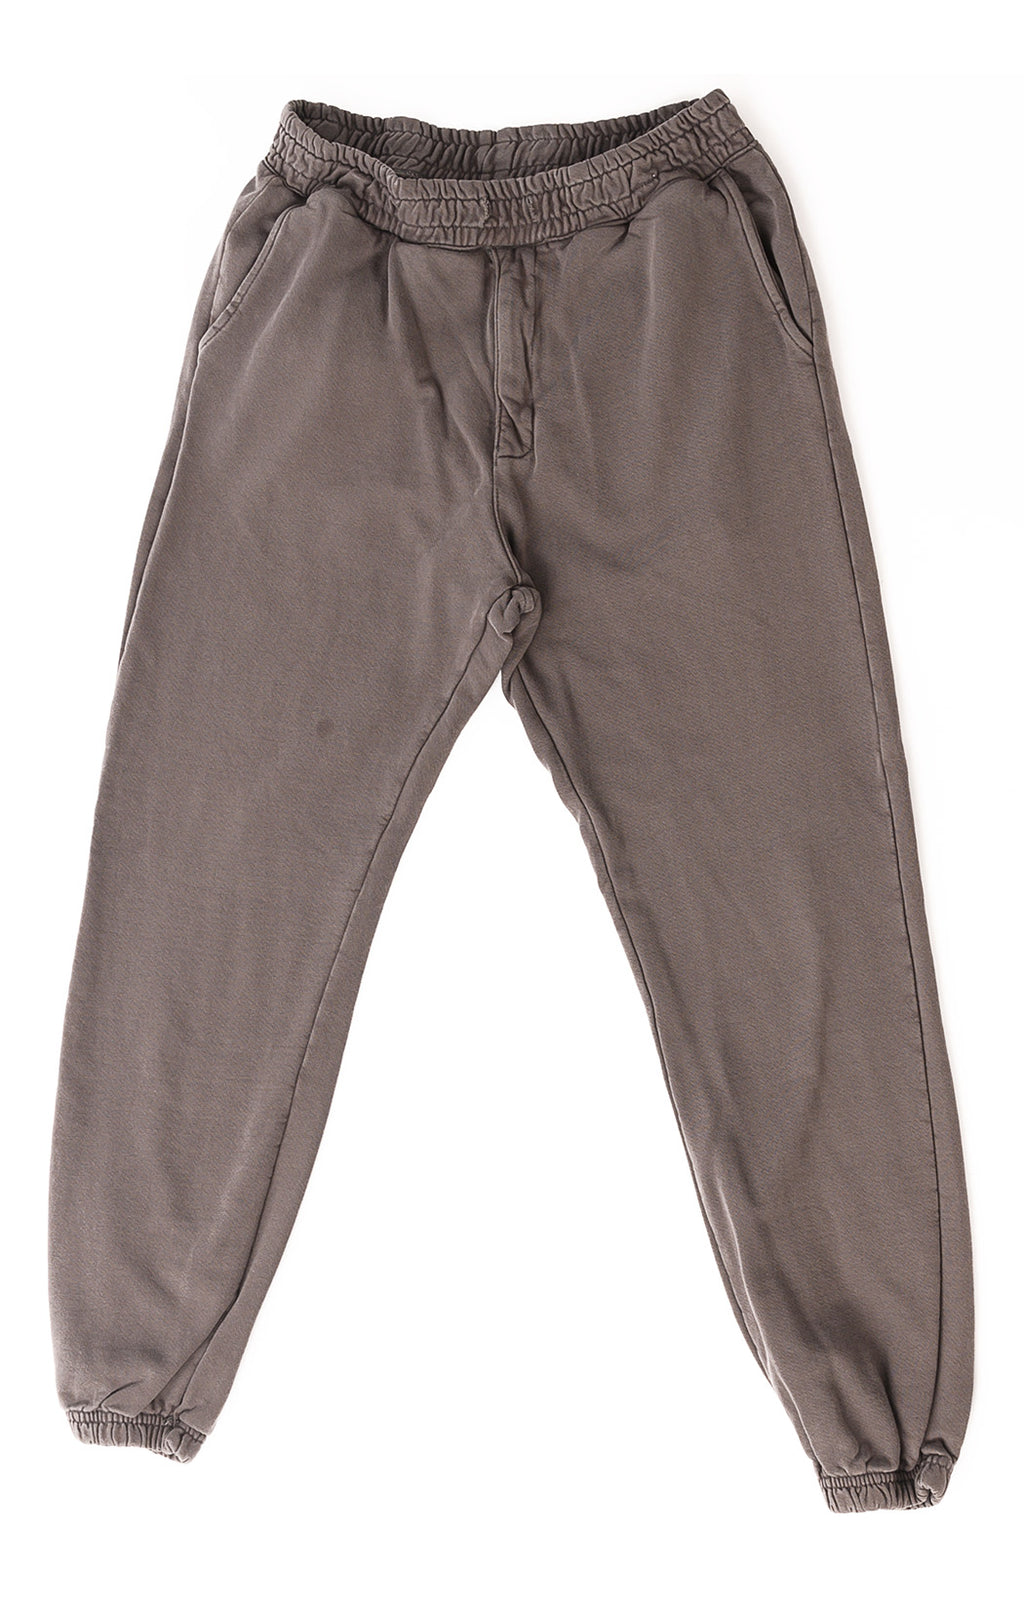 Front view of KEEPING NEW YORK EVERYWHERE  Sweatpants  Size: Medium